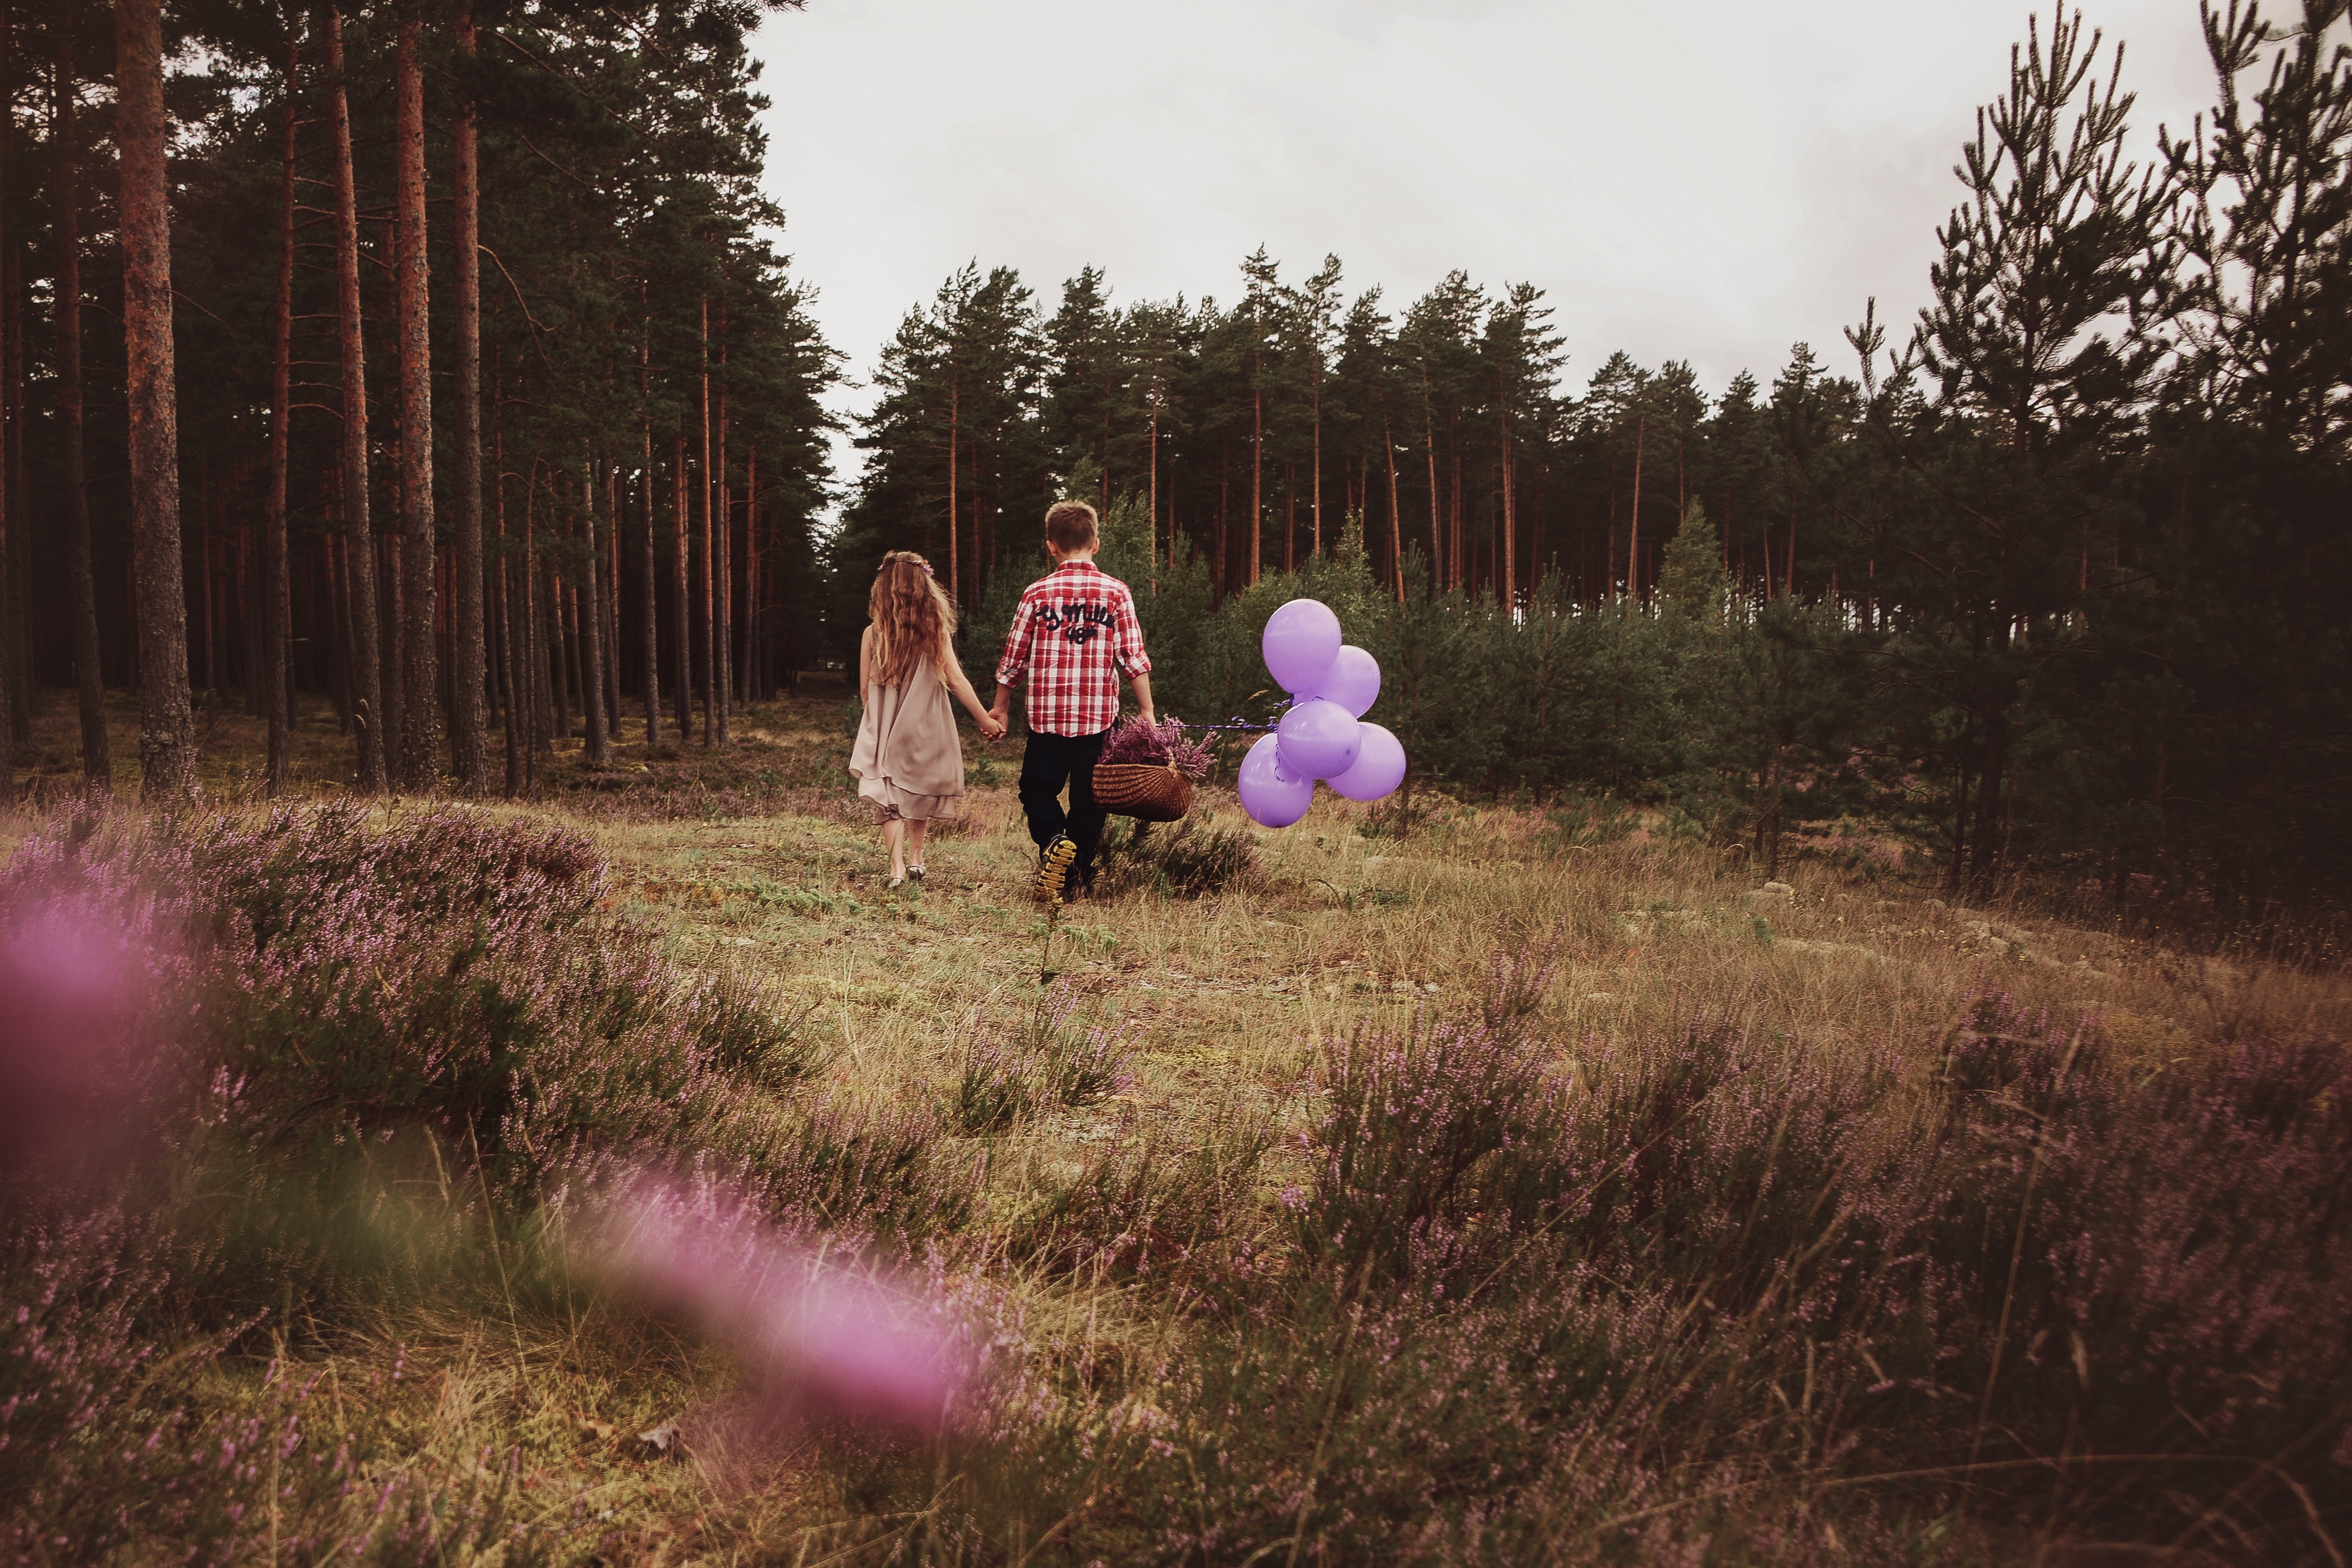 136475 download wallpaper Children, Love, Balloons, Couple, Pair, Stroll, Basket, Mood, Air Balloons, Childhood screensavers and pictures for free